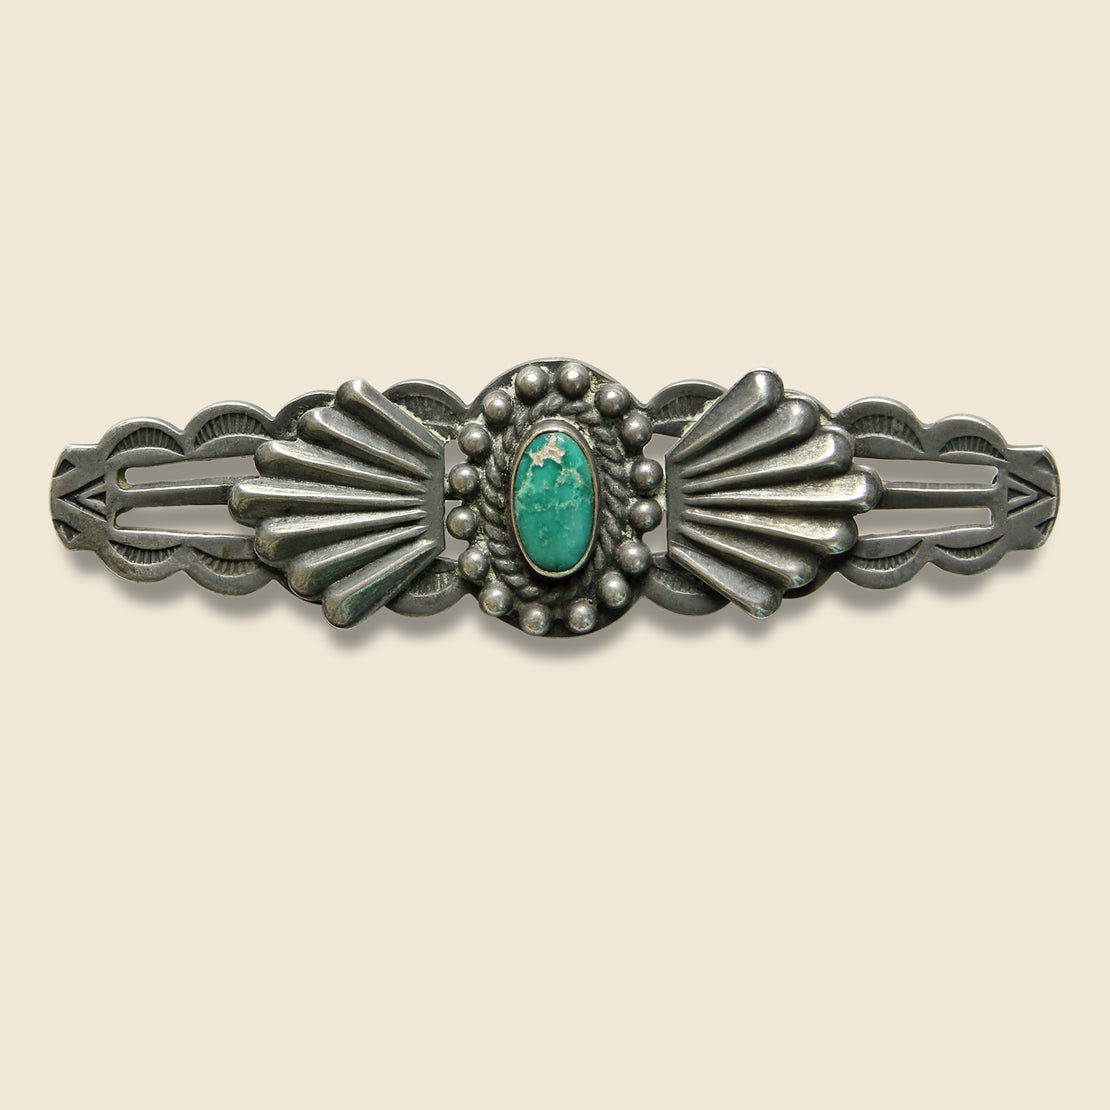 Vintage Scalloped Edge Turquoise Pin - Sterling Silver